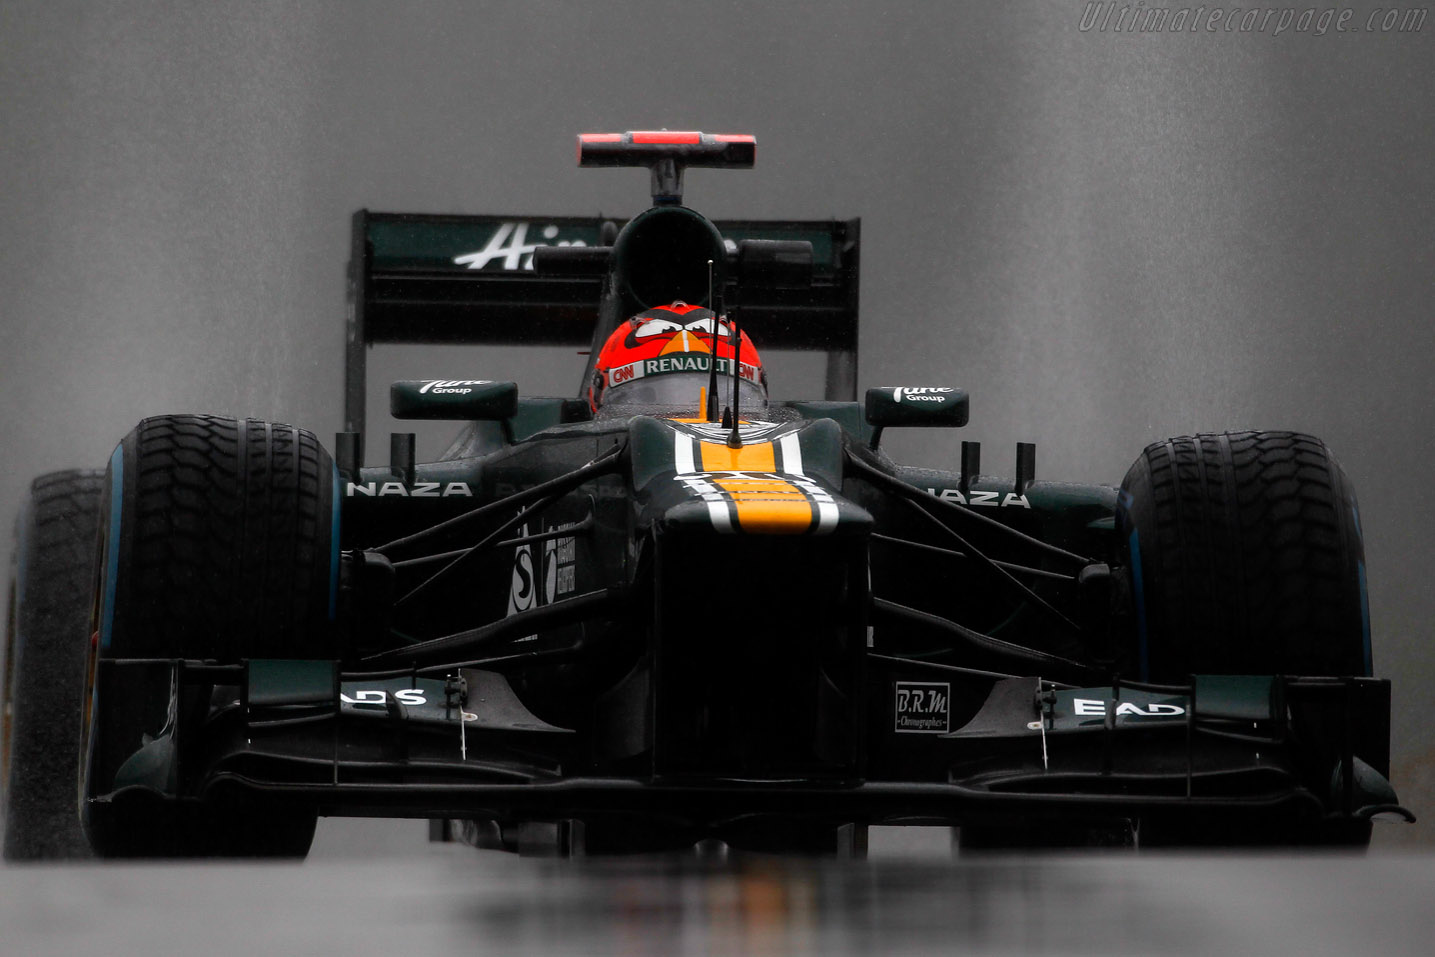 Click here to open the Caterham CT01 Renault gallery